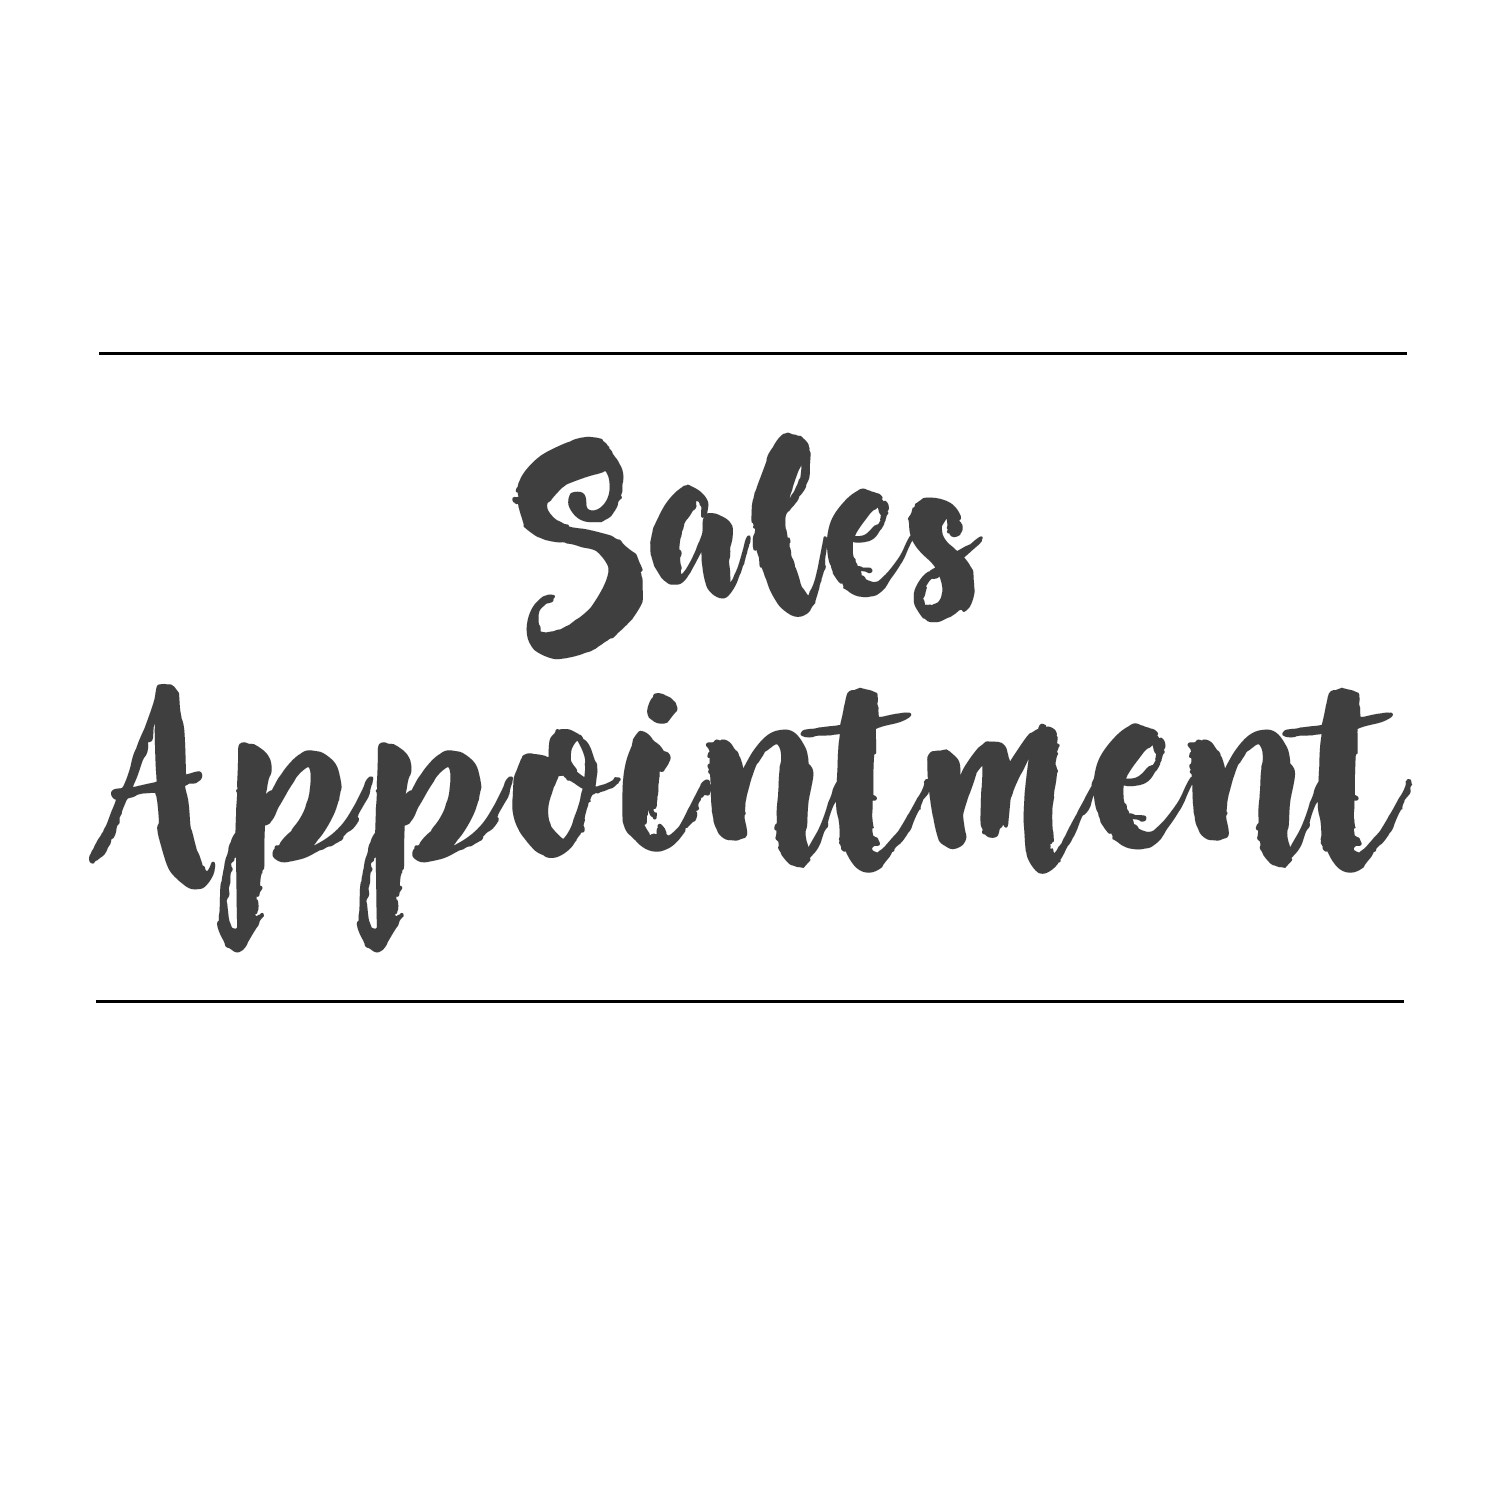 Sales Appointment